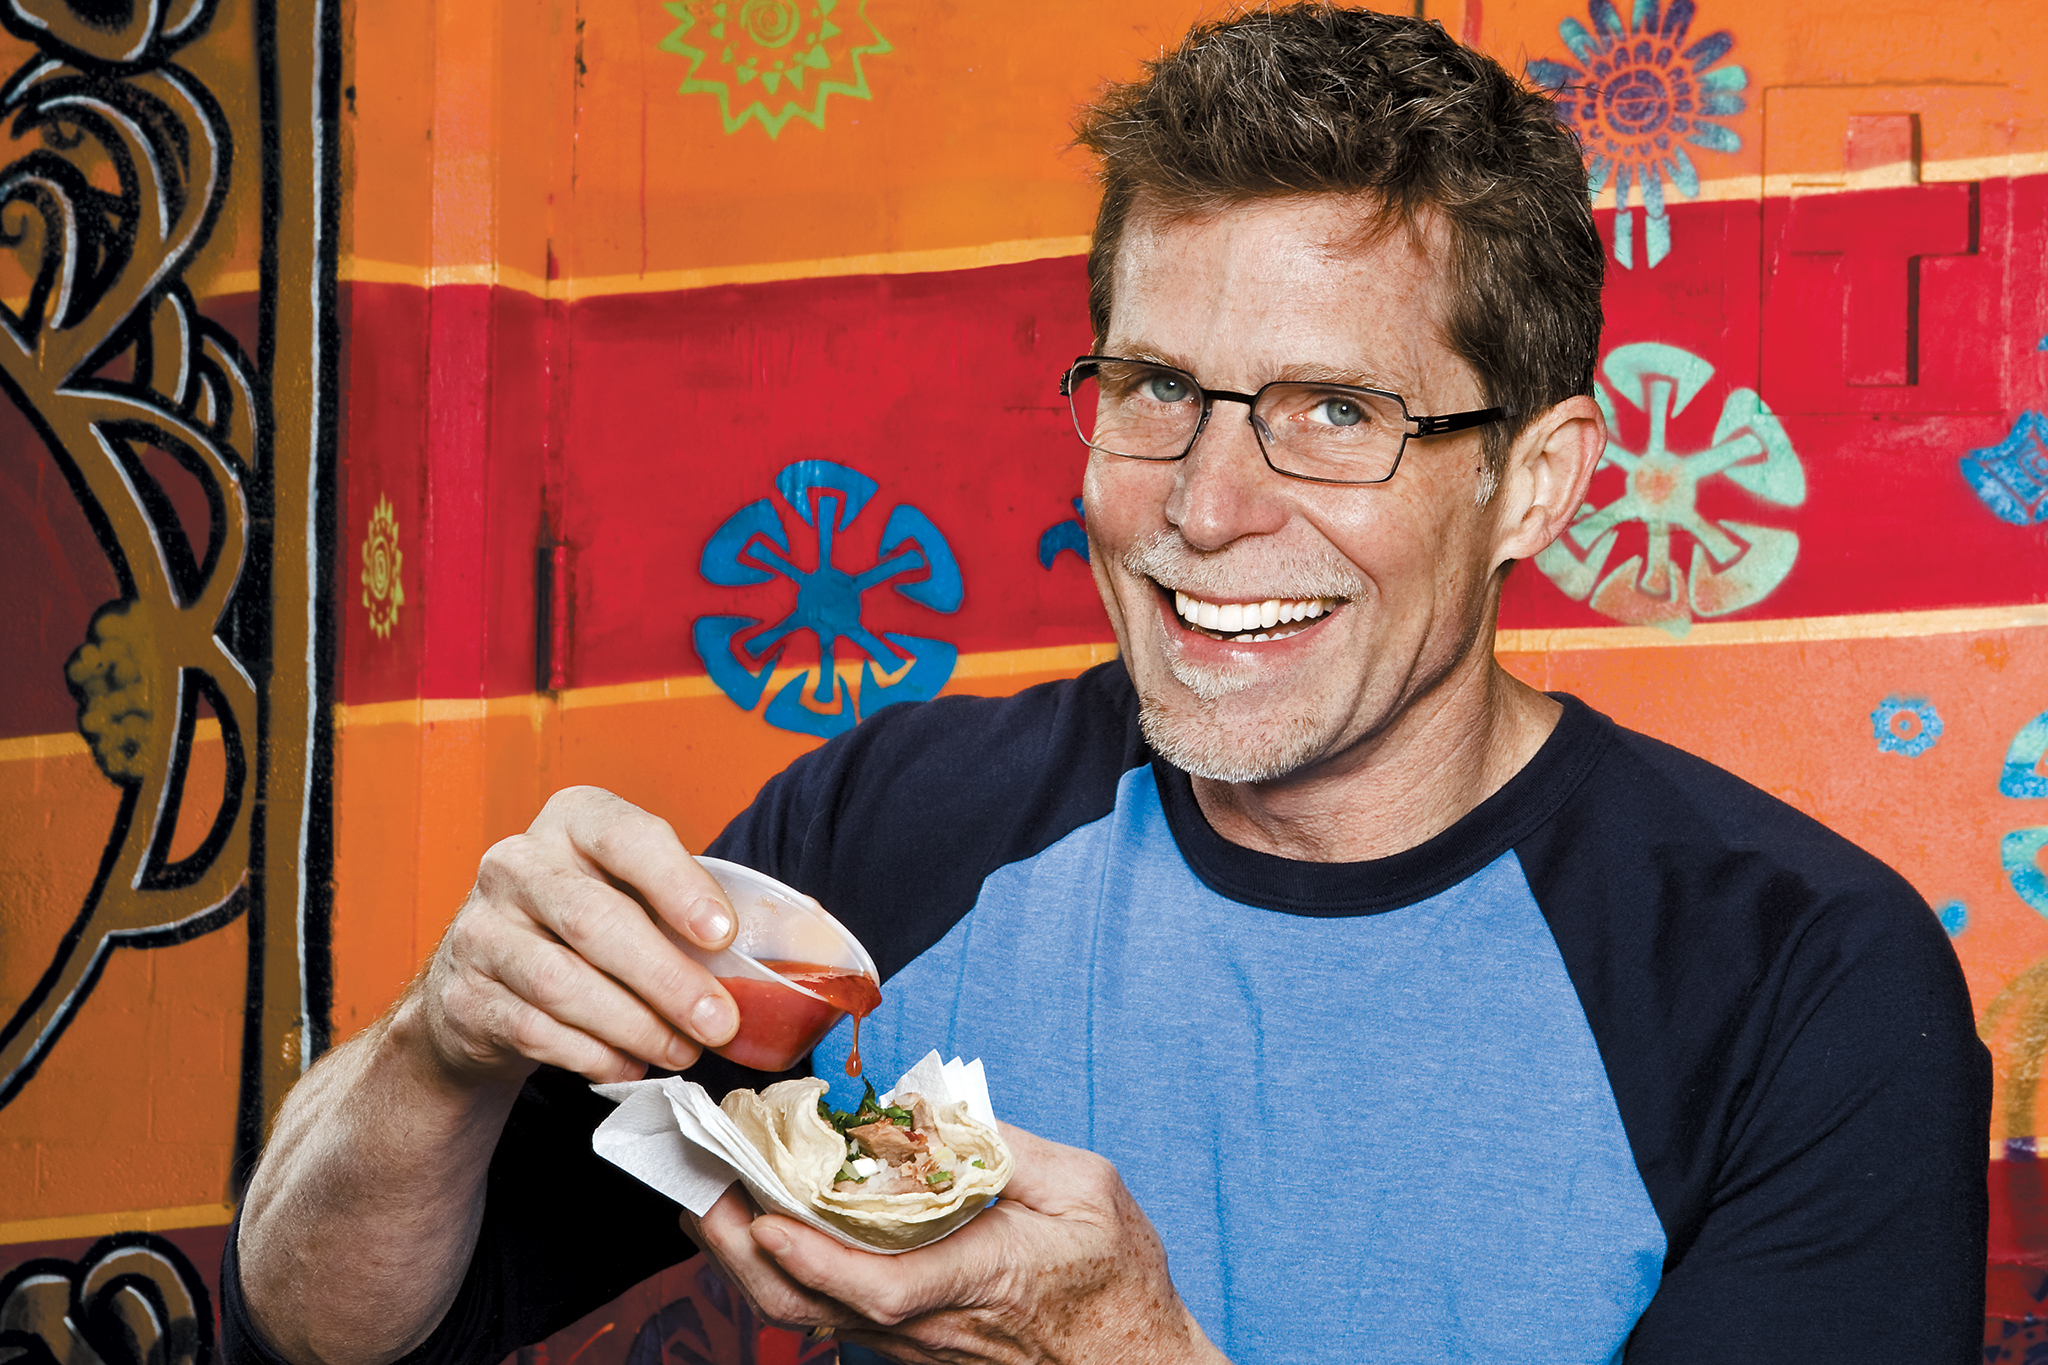 Rick Bayless on our 2008 Cheap eats cover.